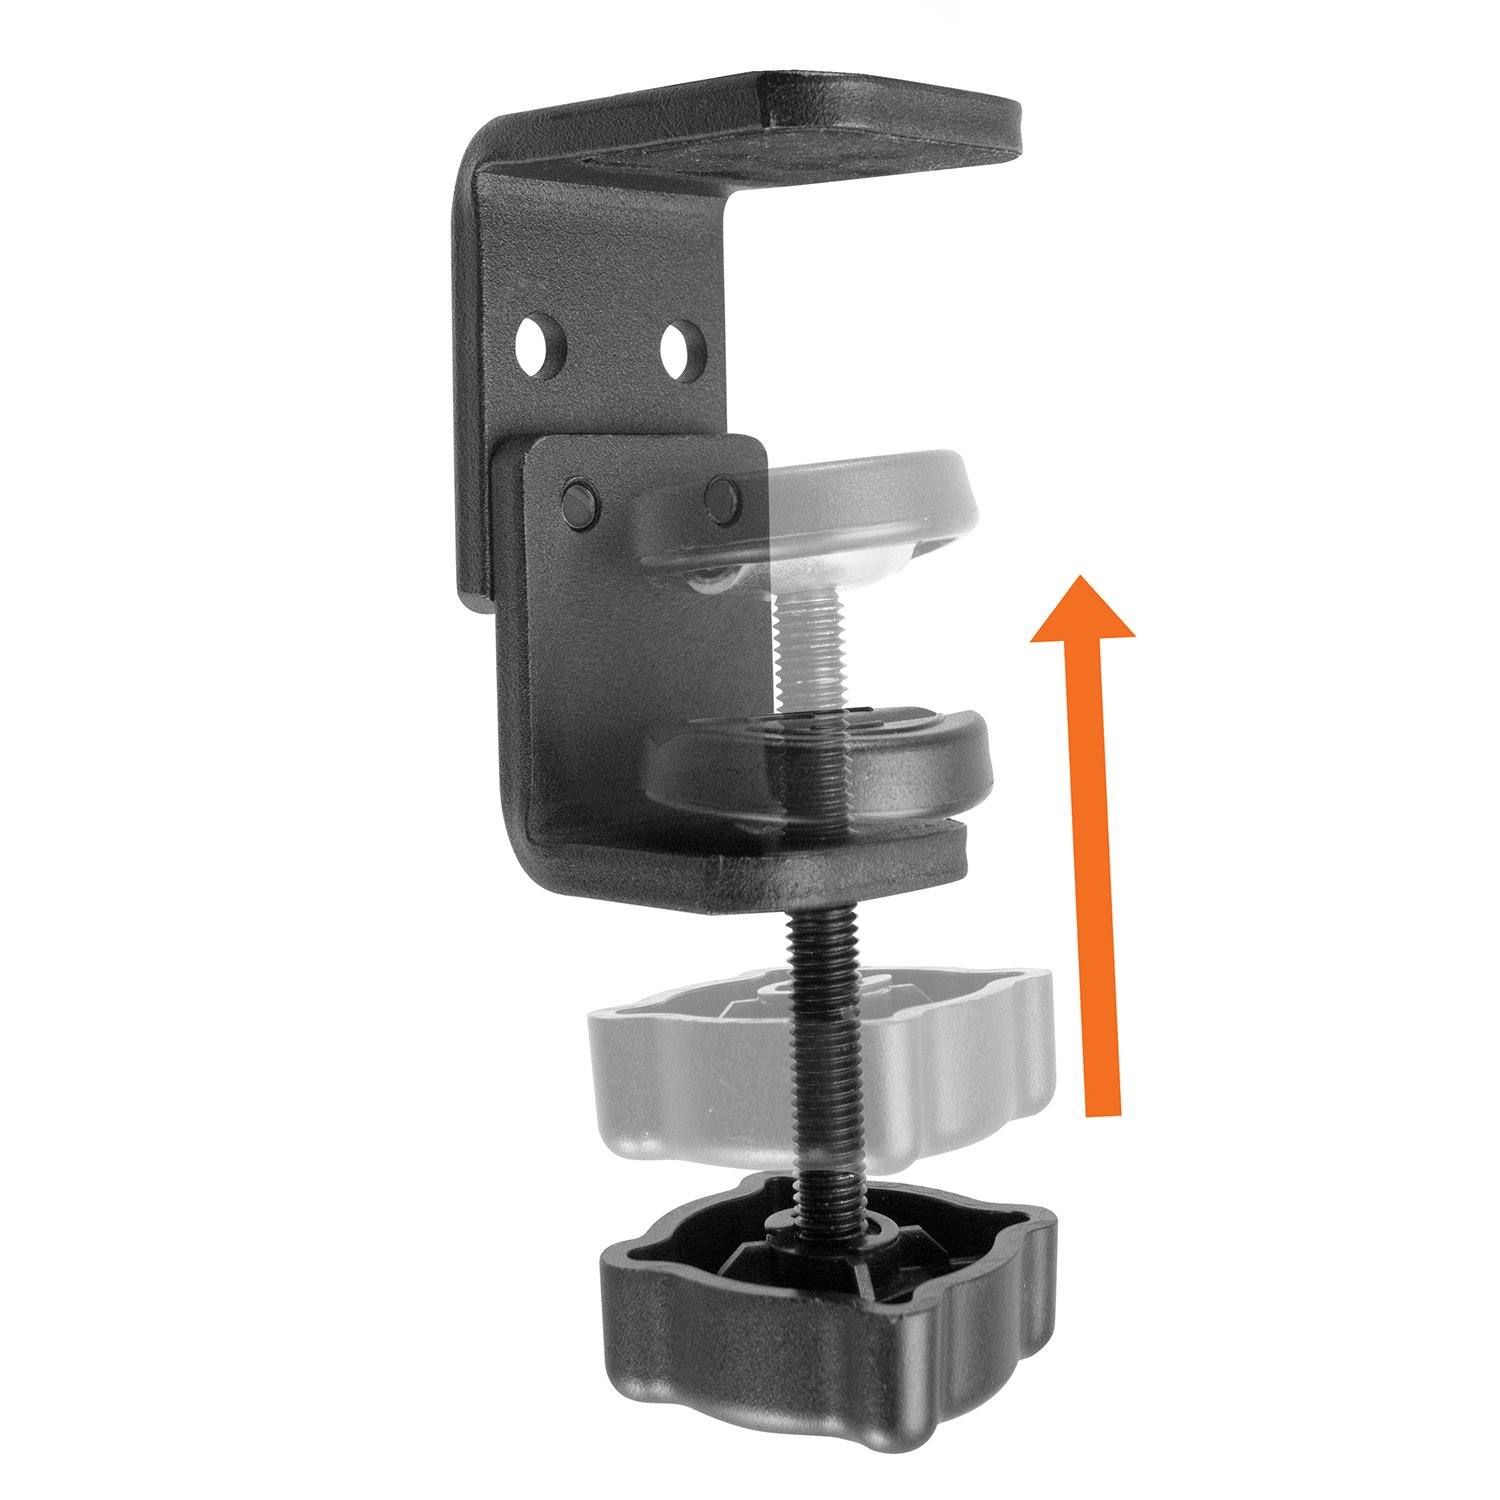 iBOLT TabDock Bizmount Clamp- Heavy Duty Dual-Ball C-Clamp Mount for All 7-10 Tablets iPad, Samsung Galaxy Tab, etc. for Desks Offices IBBZ-33910 Wheelchairs Tables Carts: Great for Homes Schools